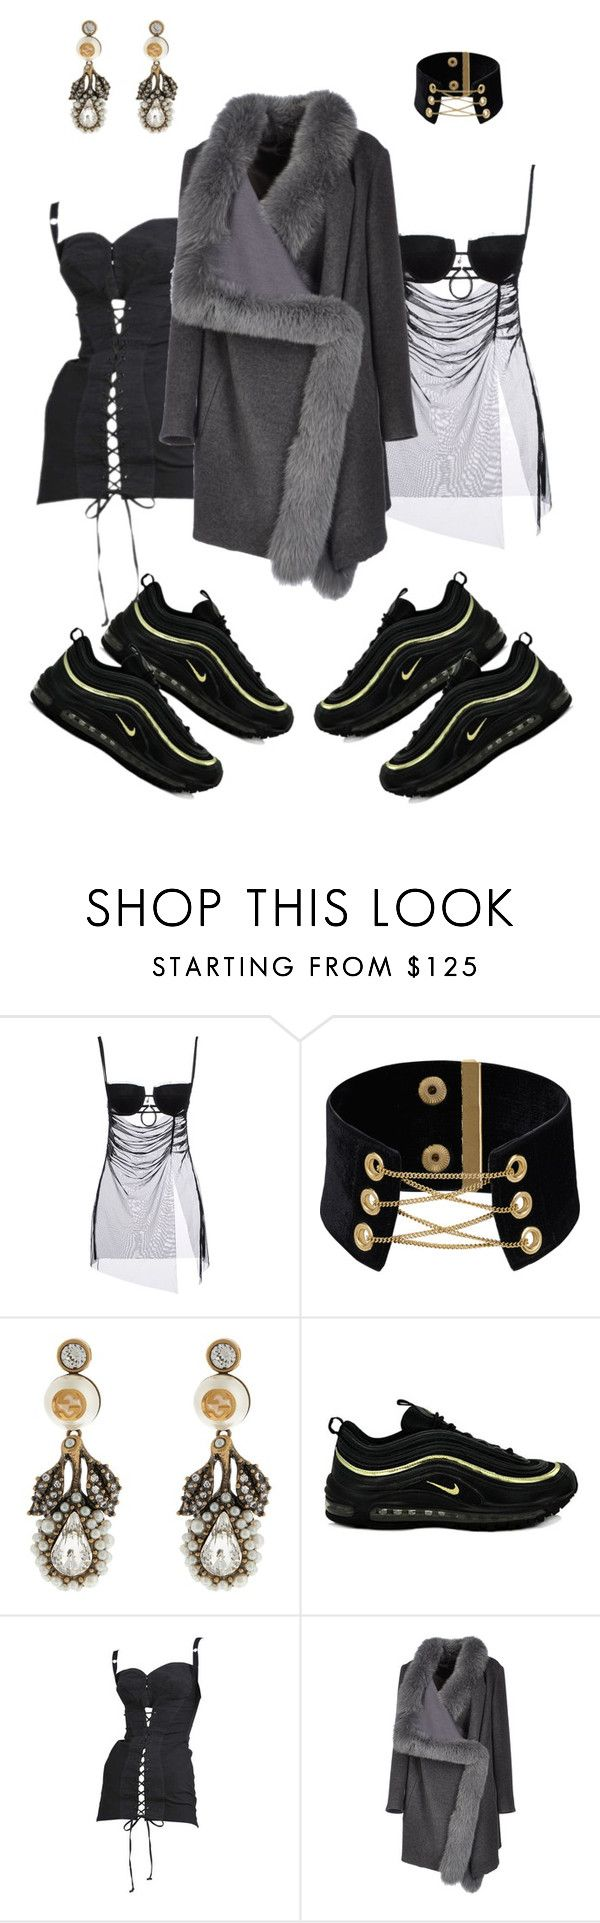 """when you only have two dark sides"" by astrro on Polyvore featuring John Richmond, Gucci, NIKE, Jean-Paul Gaultier and 32 Paradis Sprung Frères"